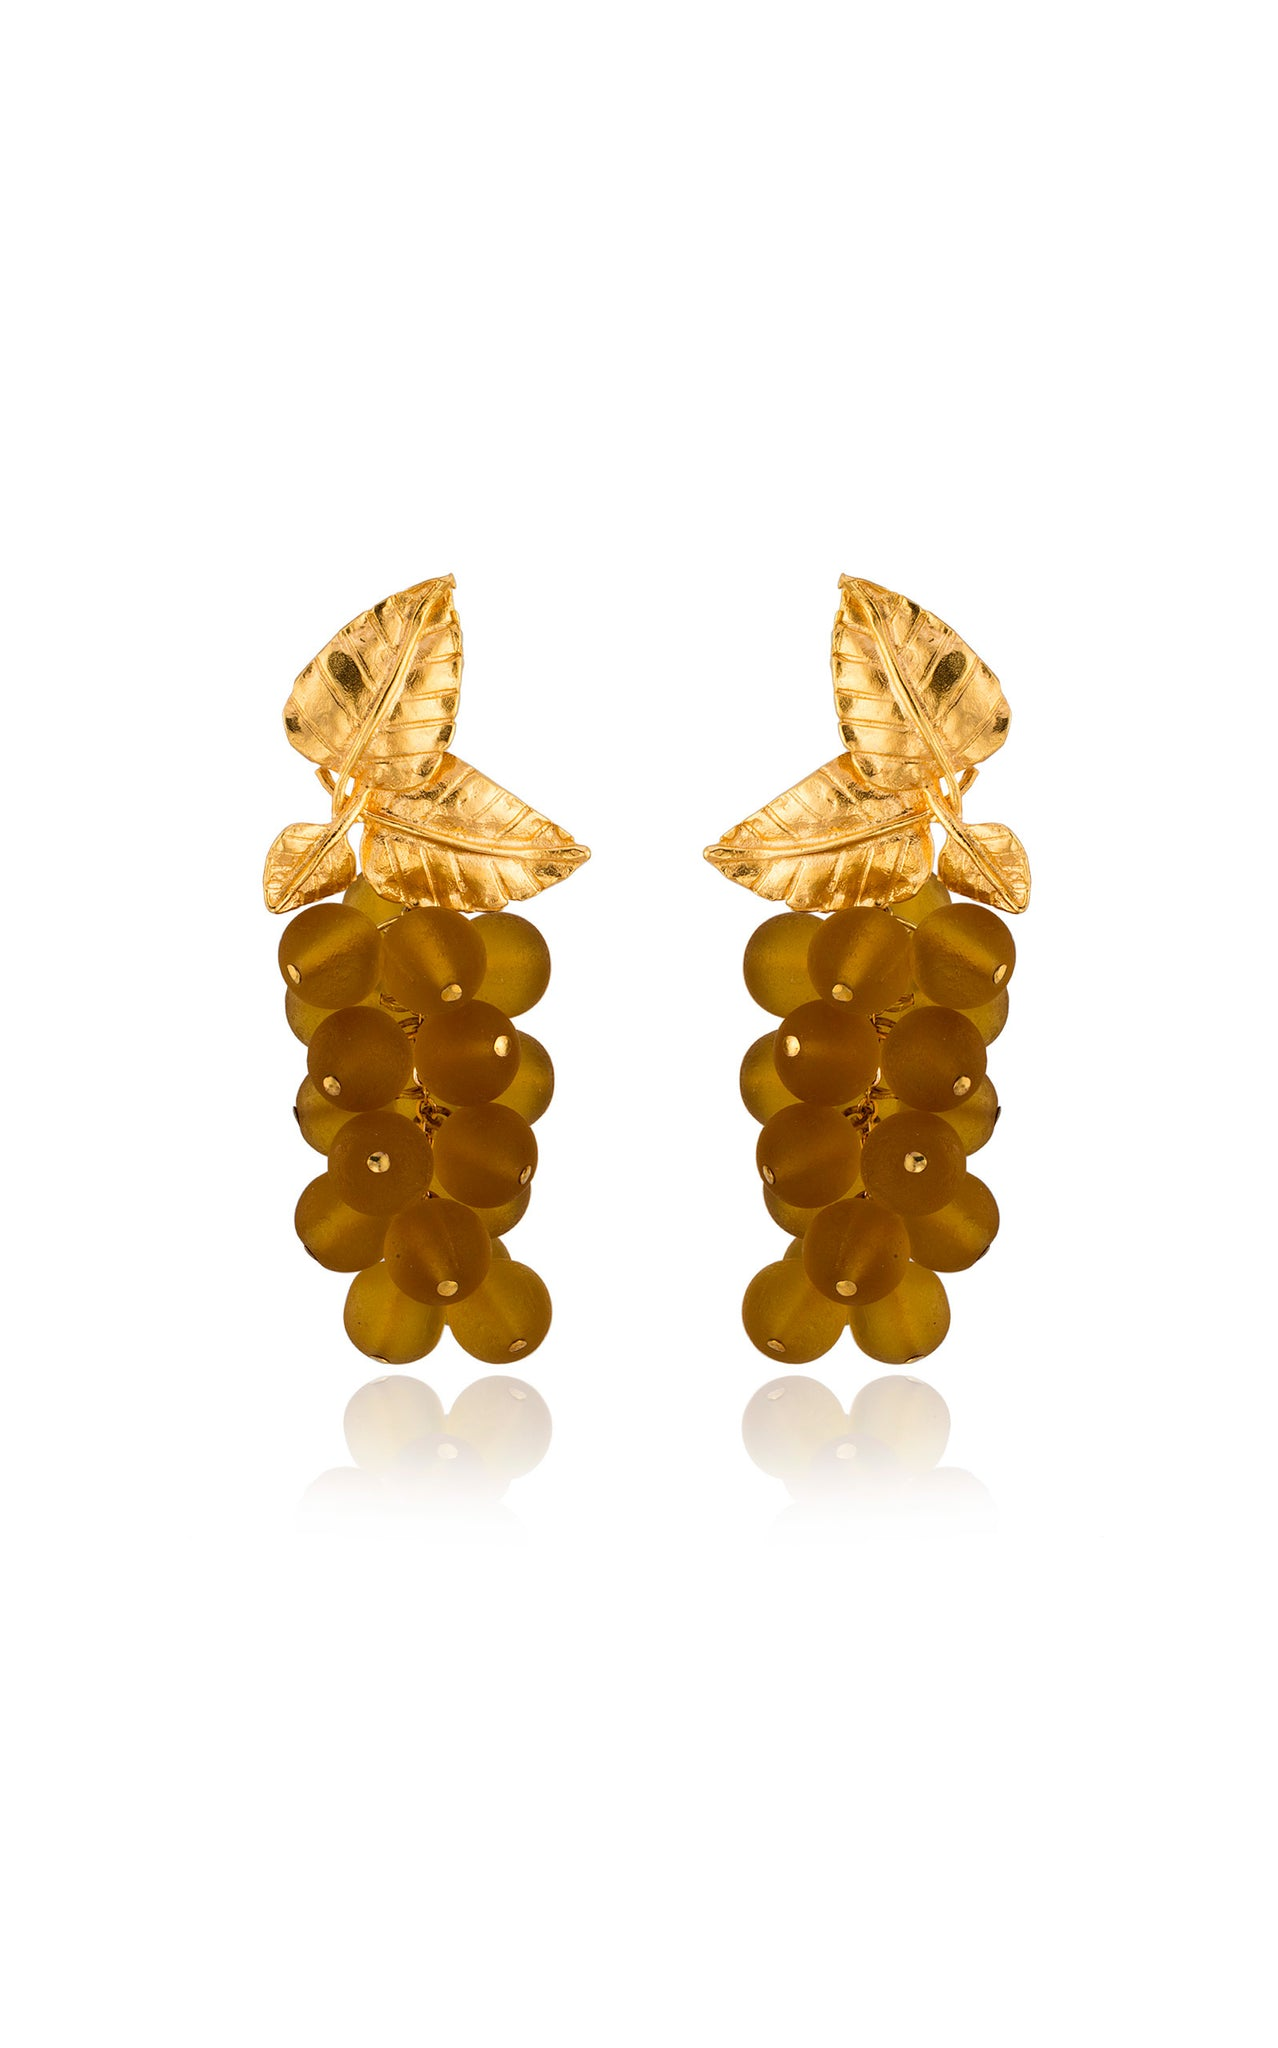 Dafne Earrings in Amber Yellow